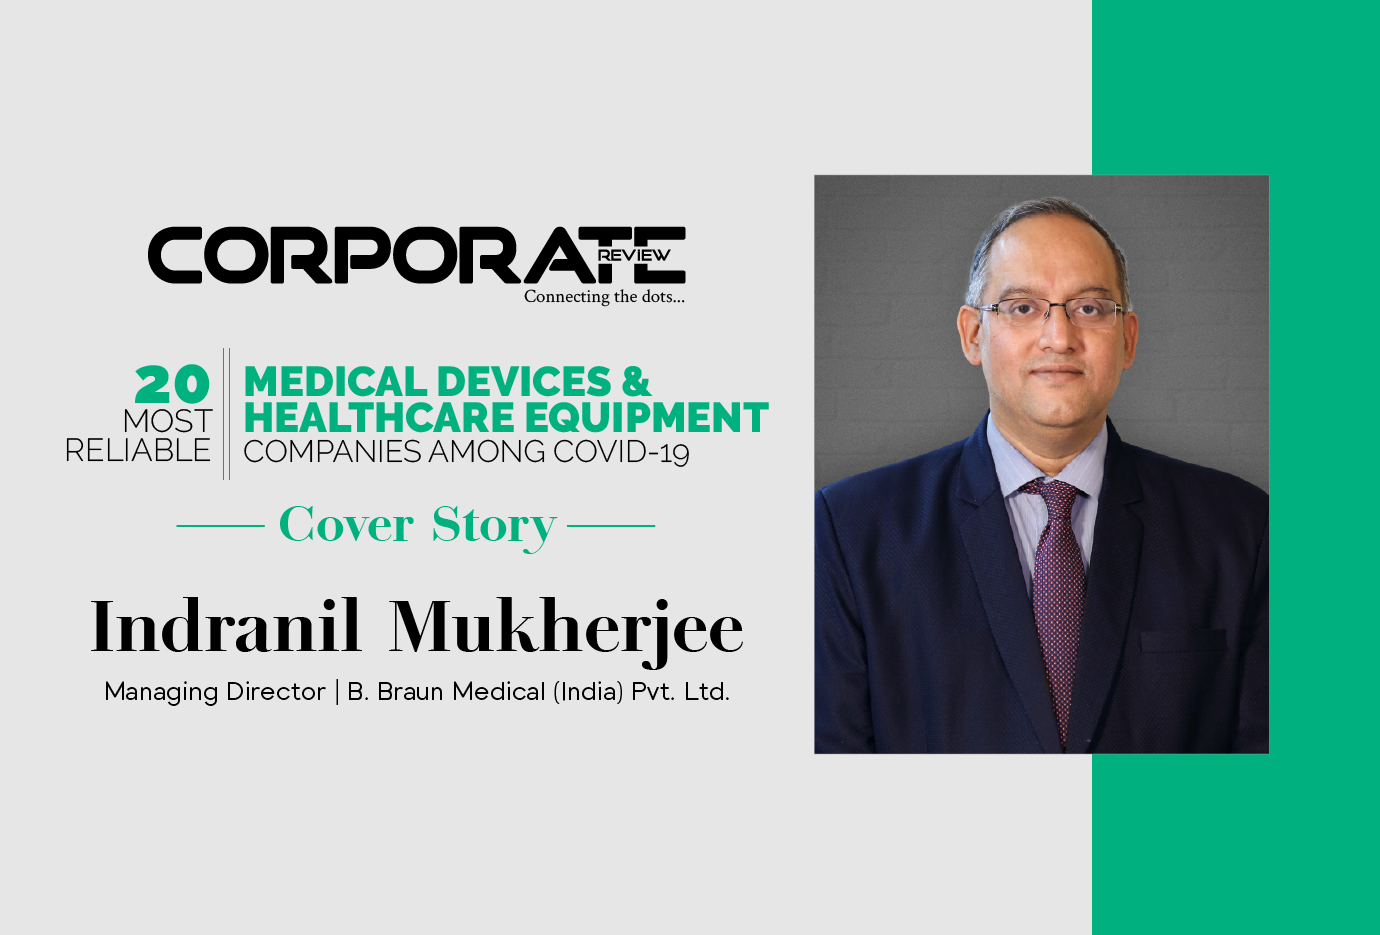 COVER STORY- The Oracle Transforming Healthcare With Excellence, B. BRAUN MEDICAL (INDIA) PVT. LTD.